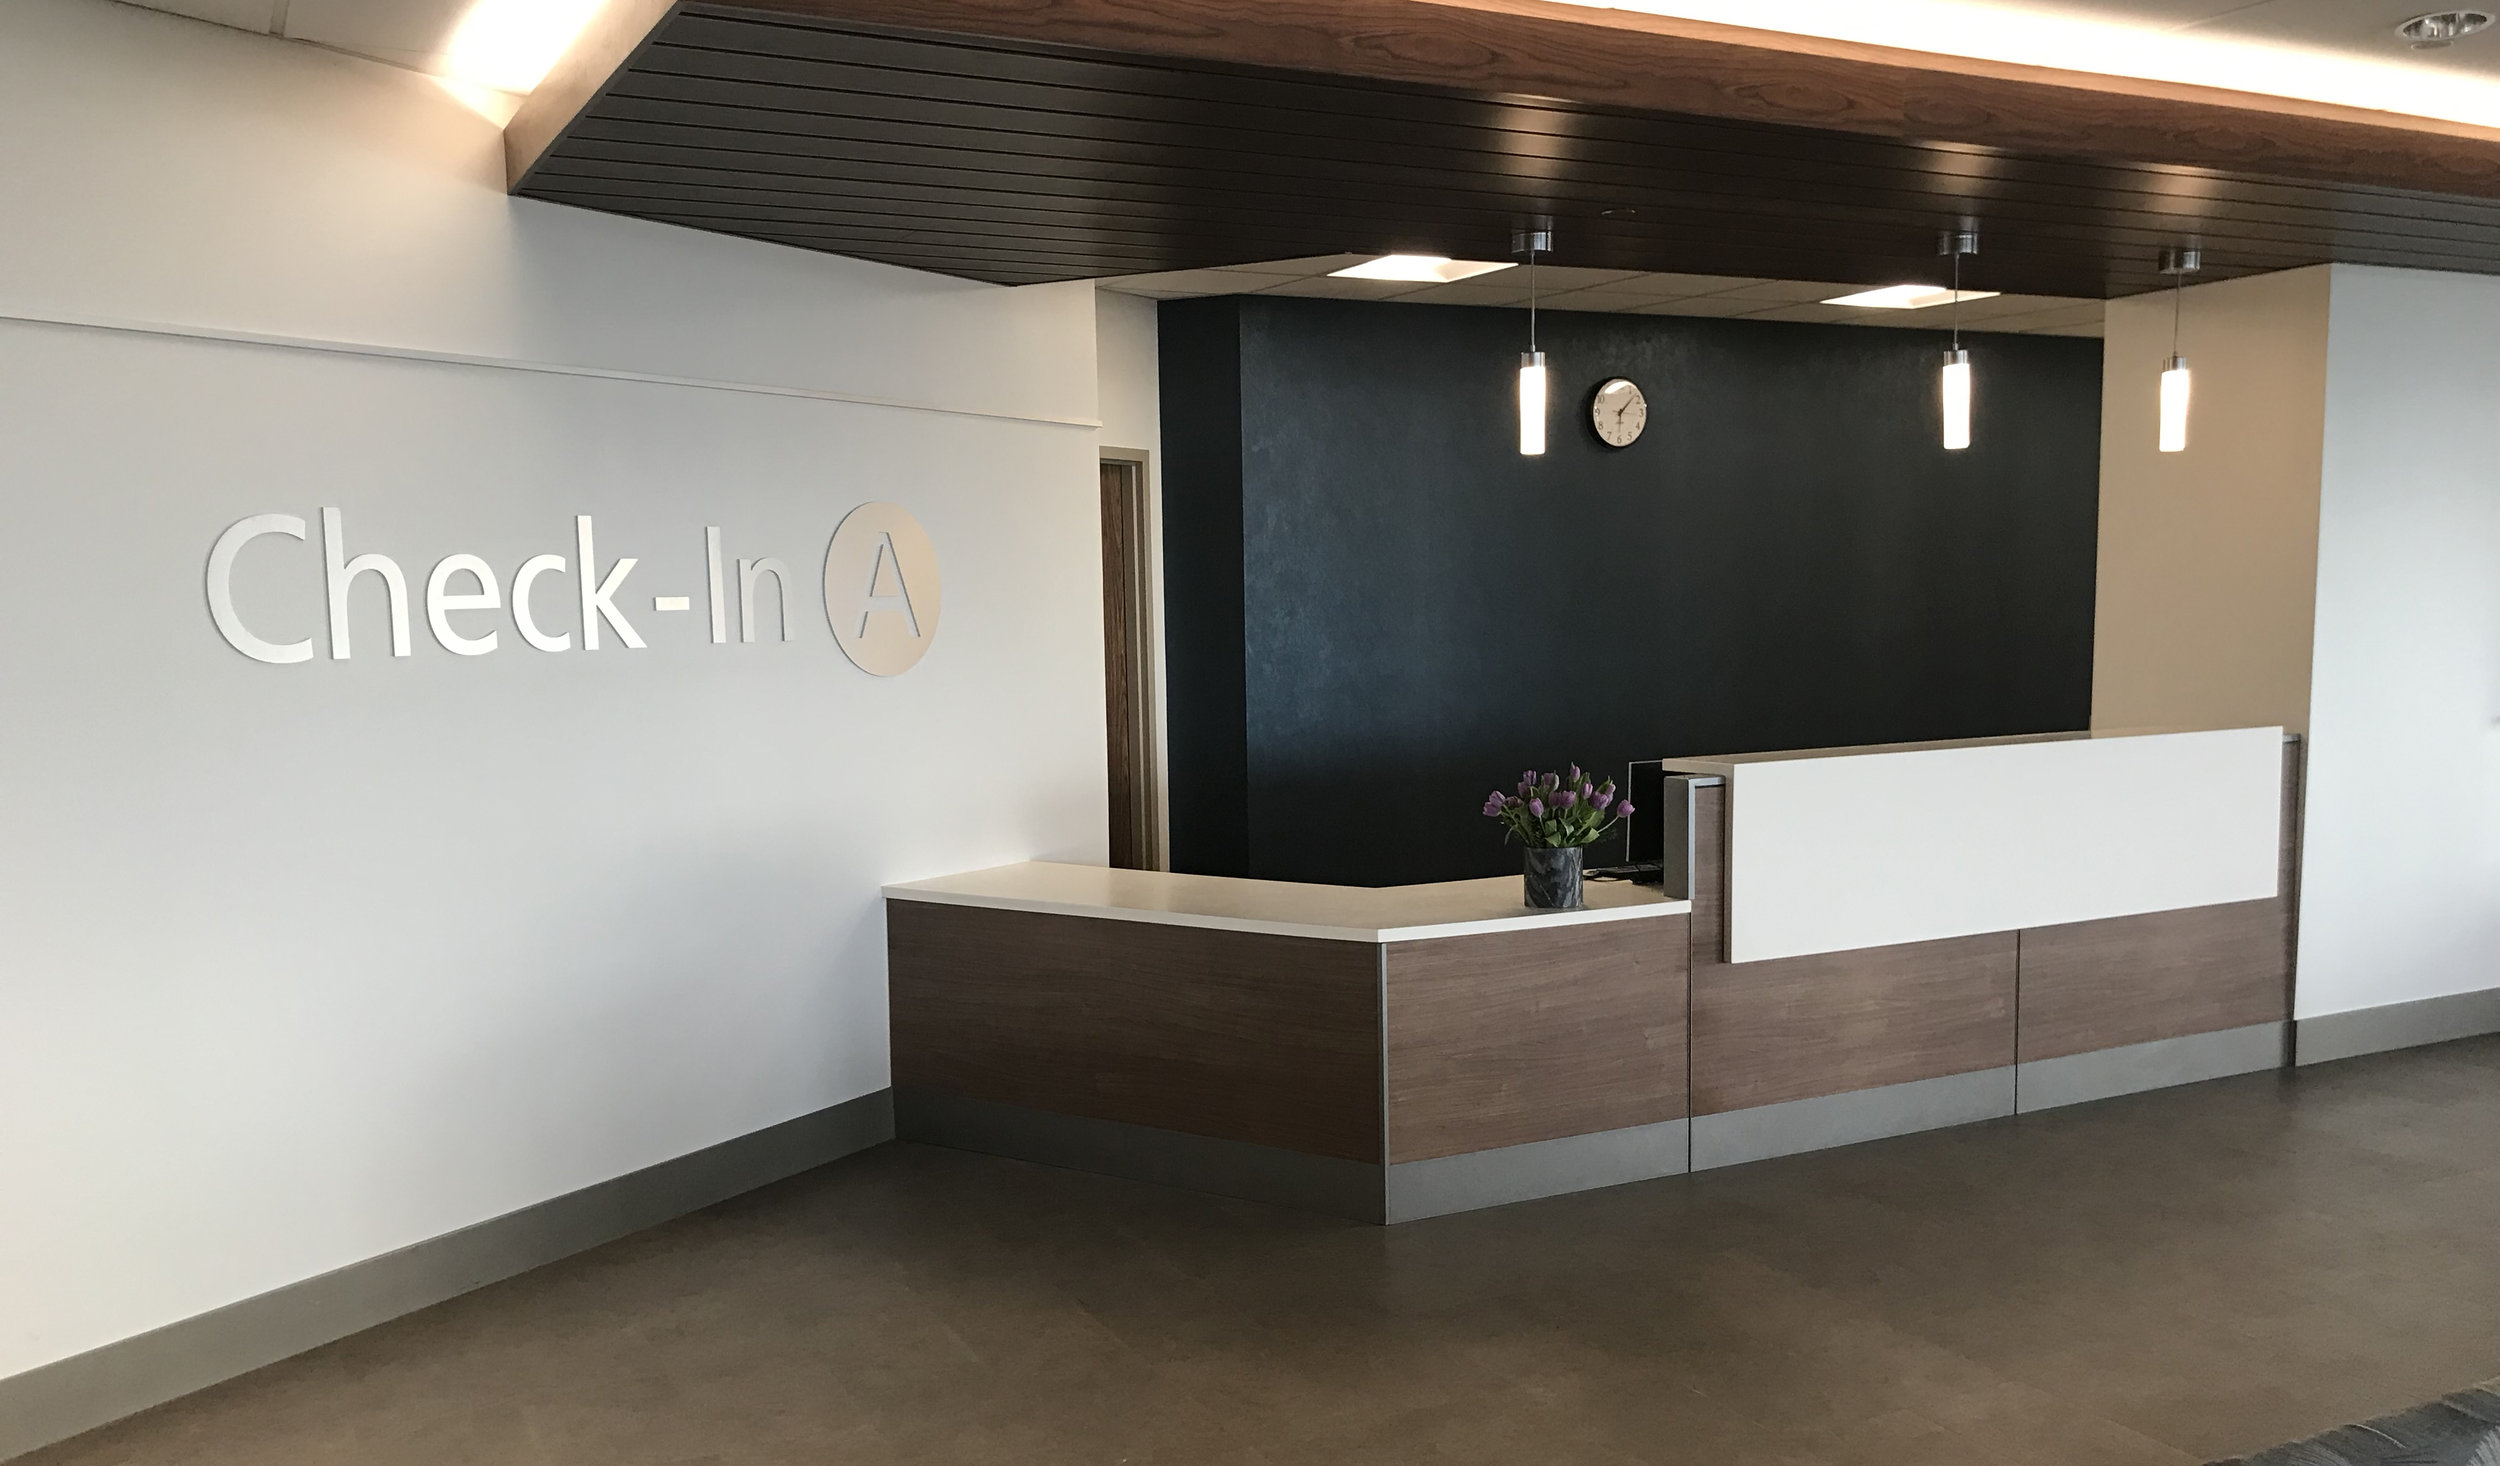 Reception Desks - Create the perfect reception area with custom surrounds, surfaces, transaction tops, and screens in any material.